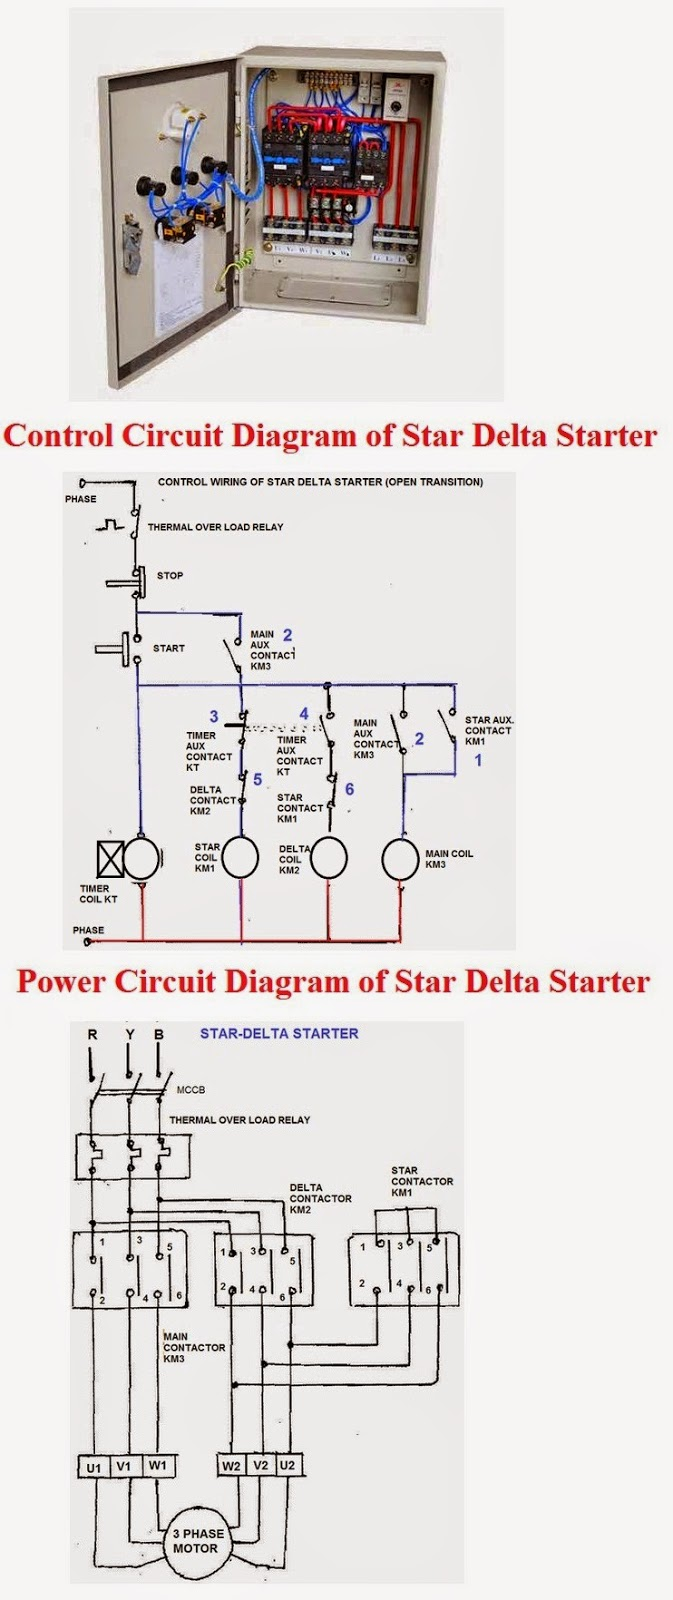 Star delta three phase motor starter control power for 3 phase motor starter circuit